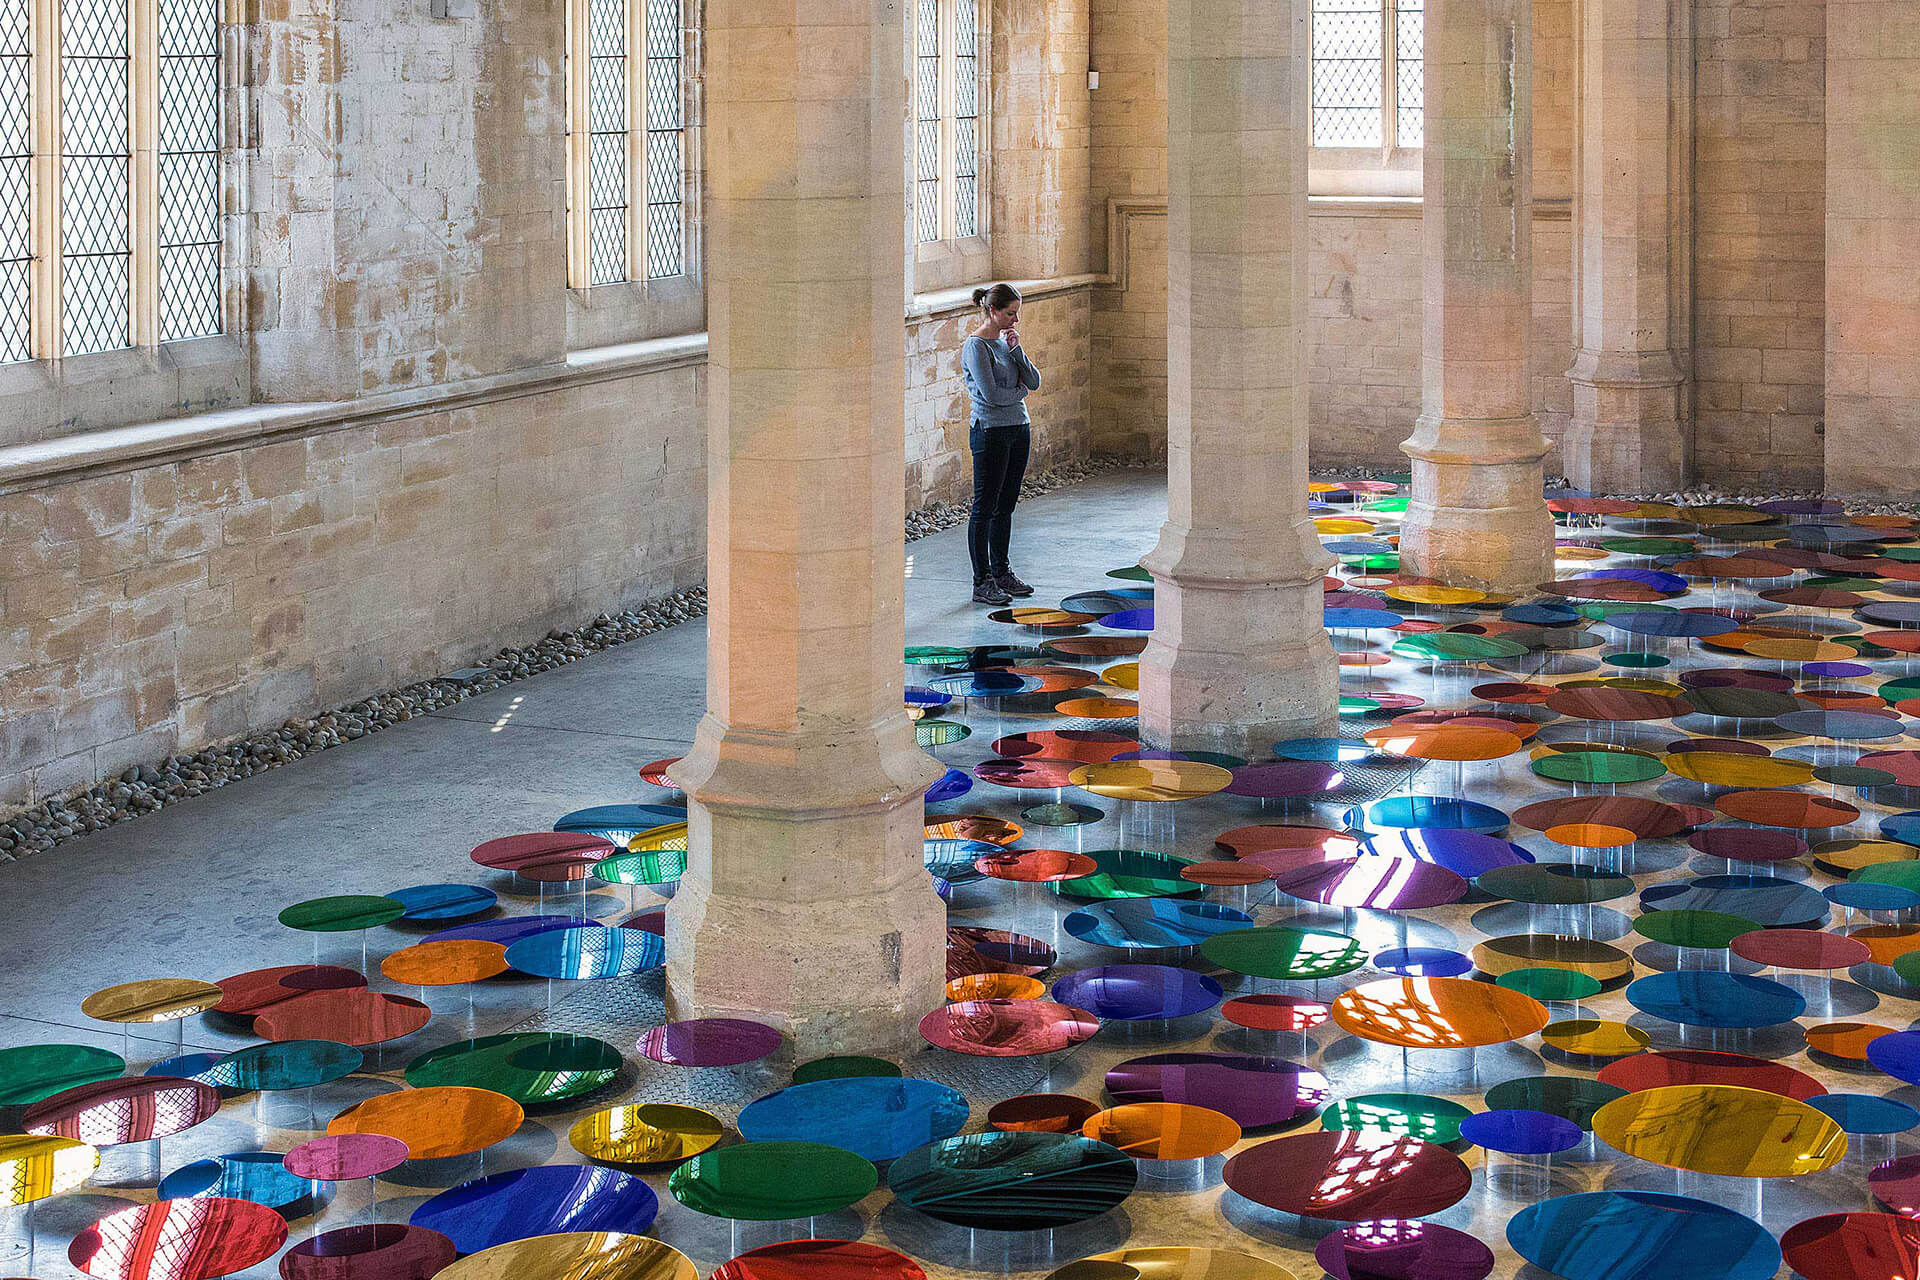 Our Colour Reflection at Visual Arts Centre in Scunthorpe, UK | Liz West | STIRworld